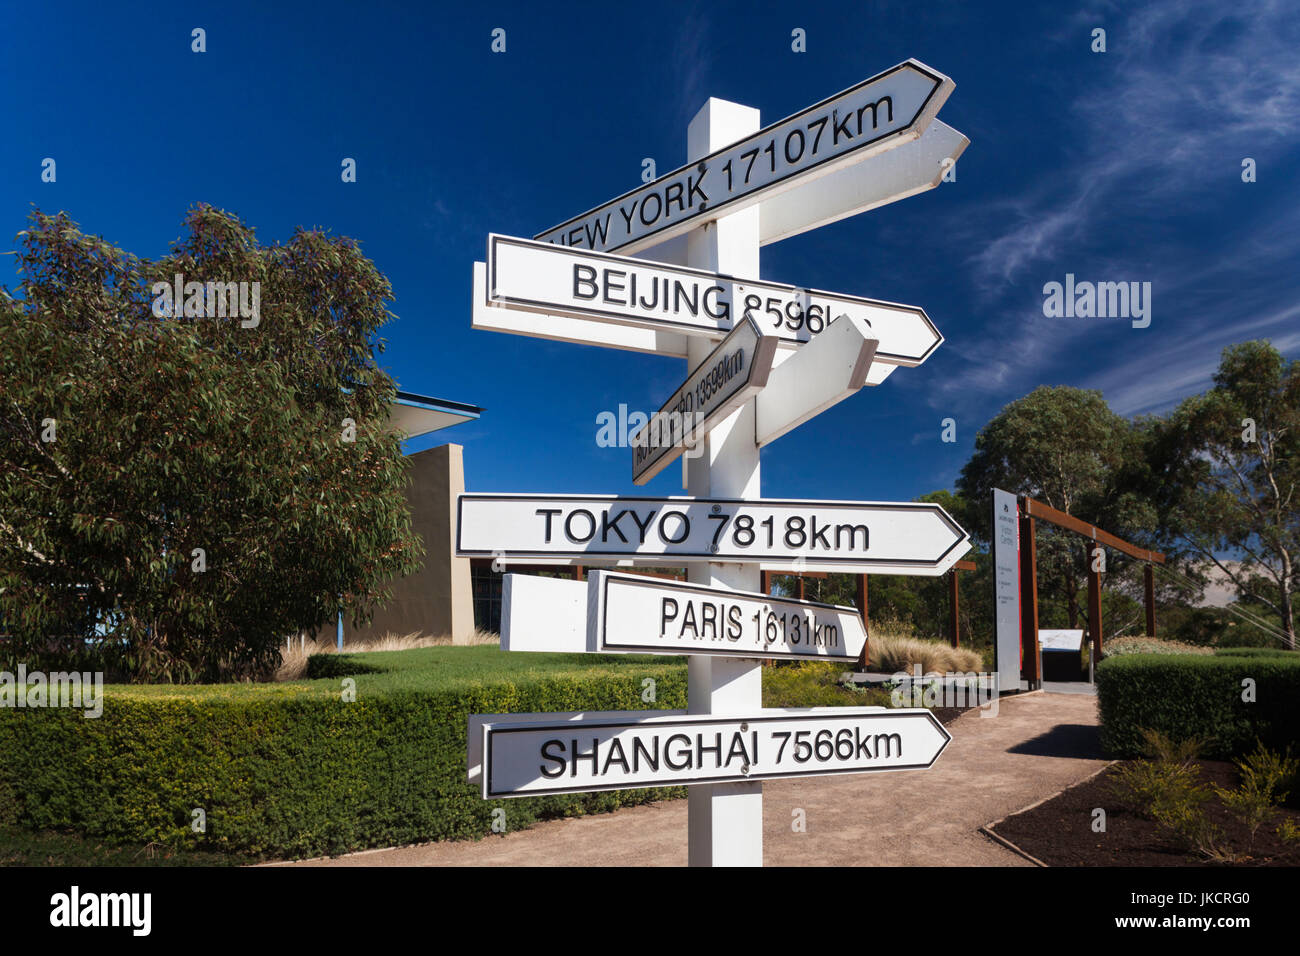 Directional Signs Stock Photos & Directional Signs Stock